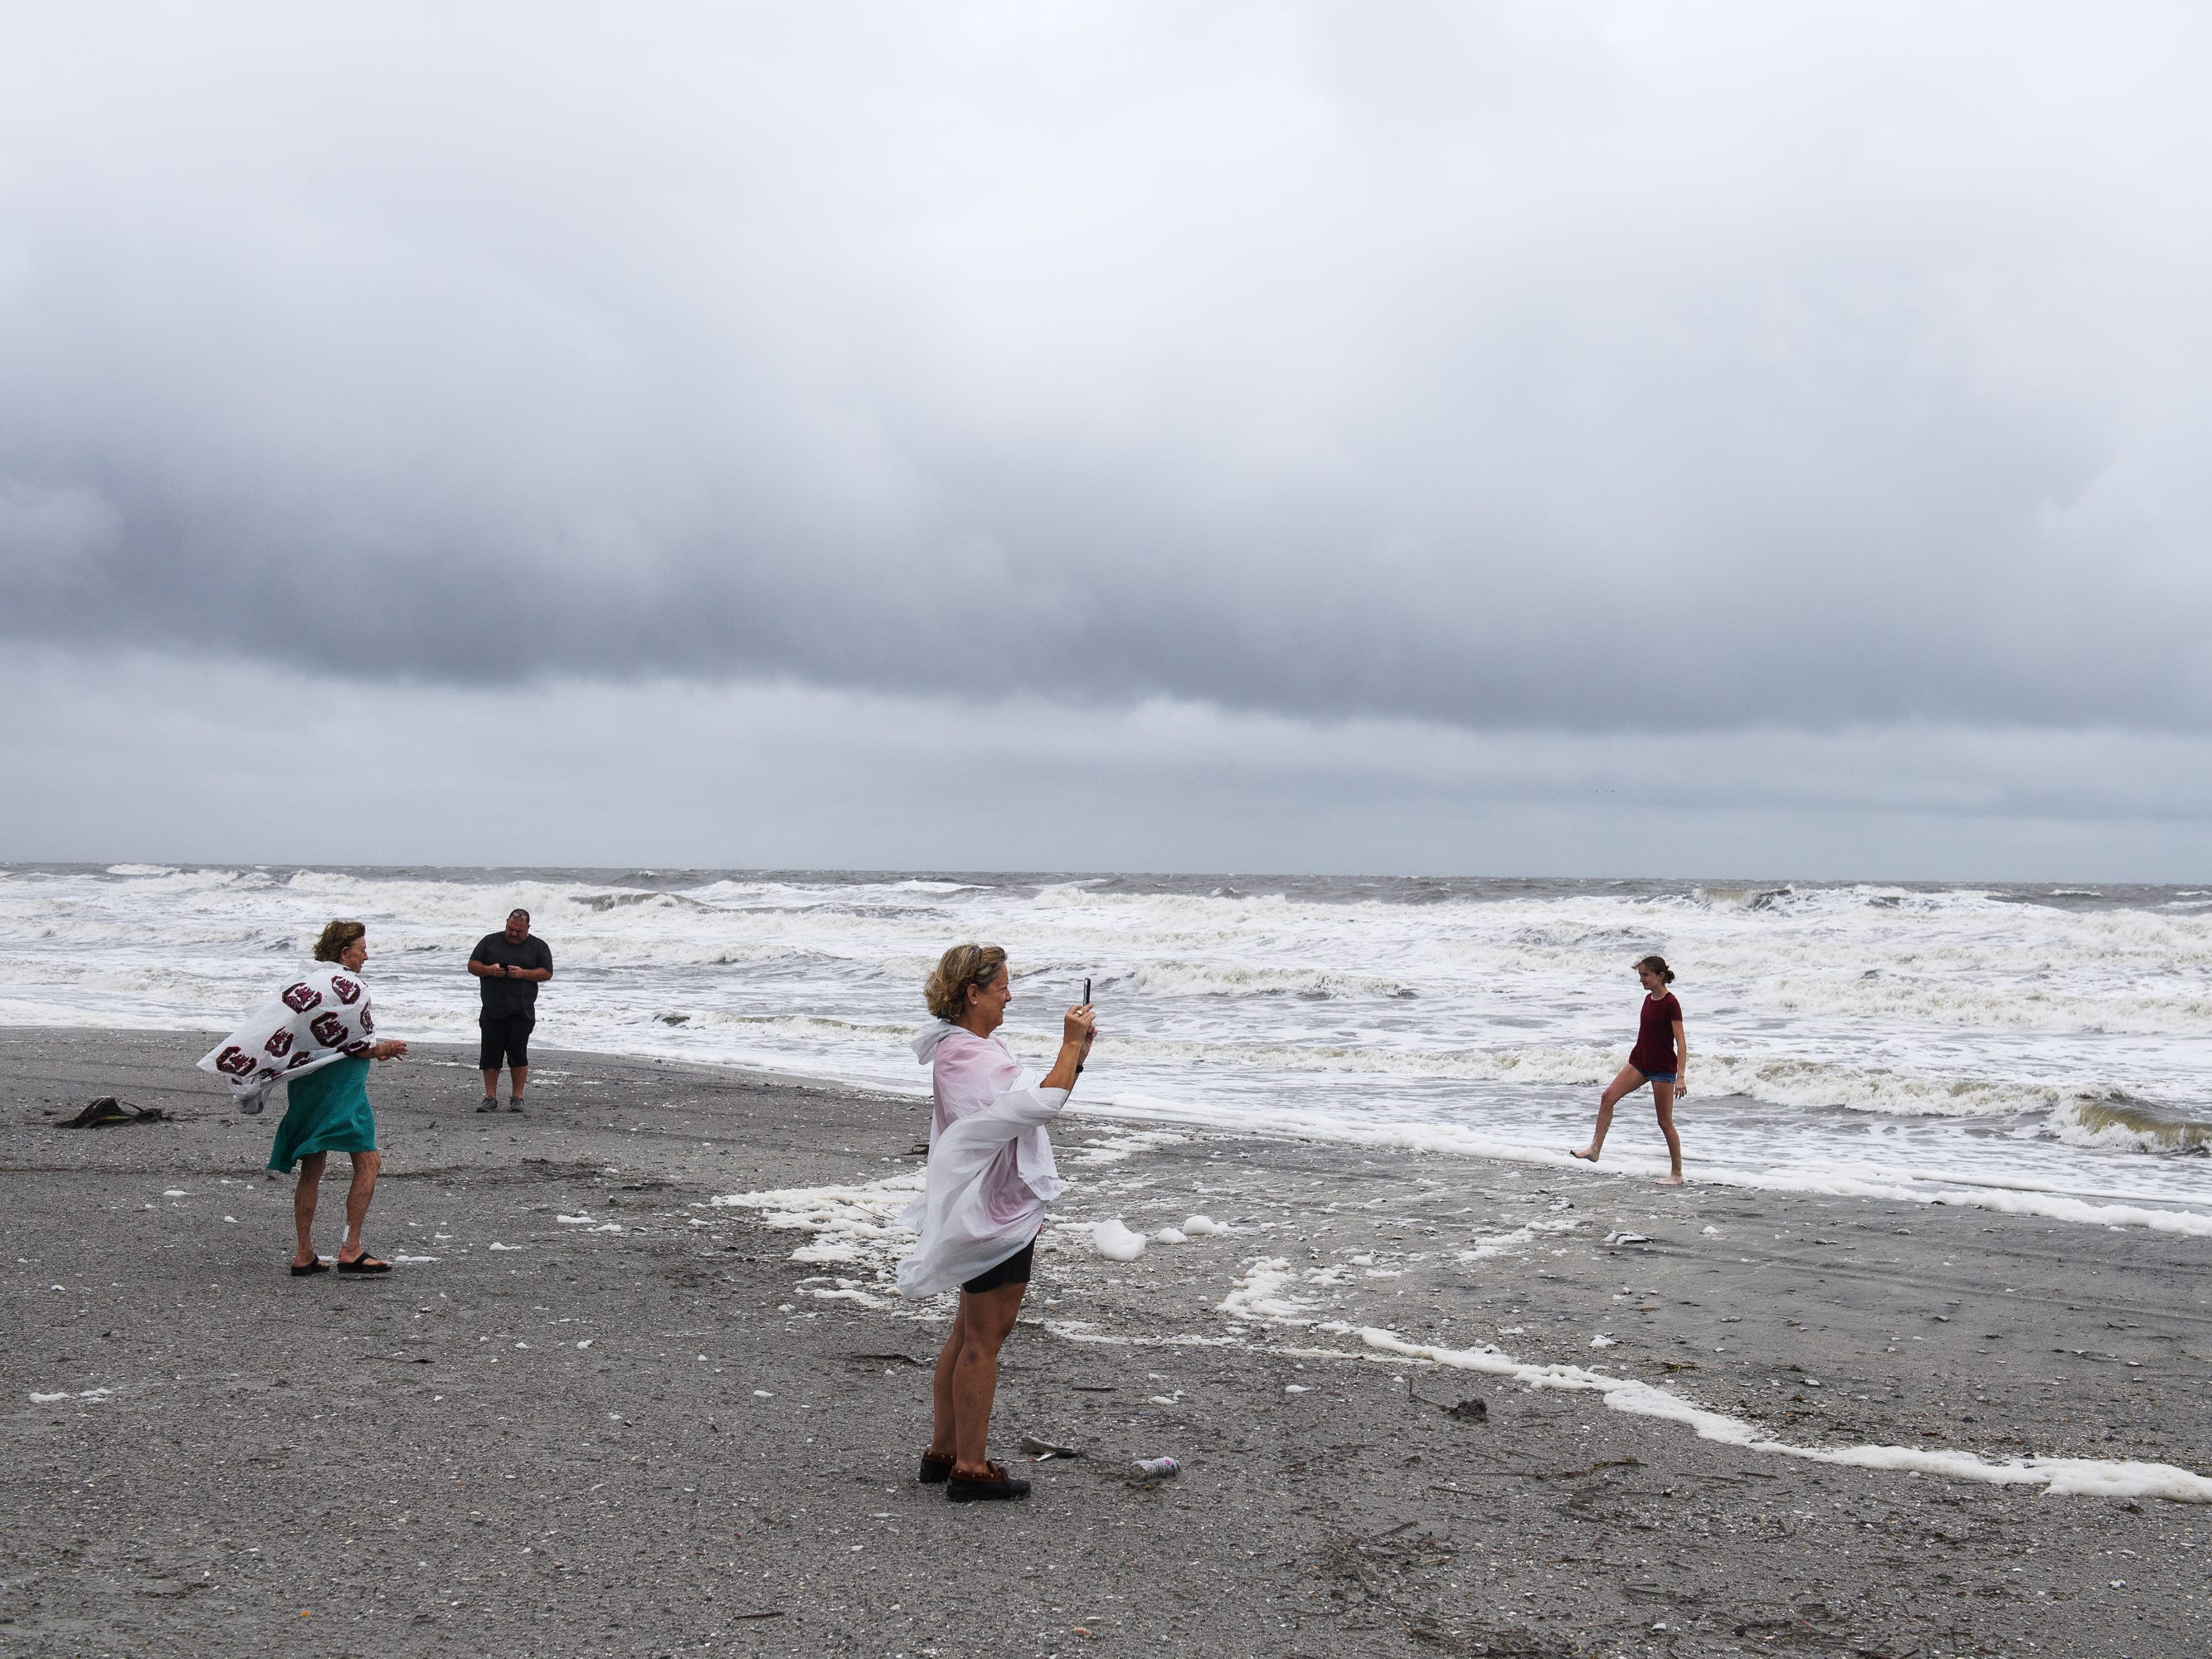 North Myrtle Beach residents check out the beach as high tide begins to come in on Saturday, Sept. 15, 2018.